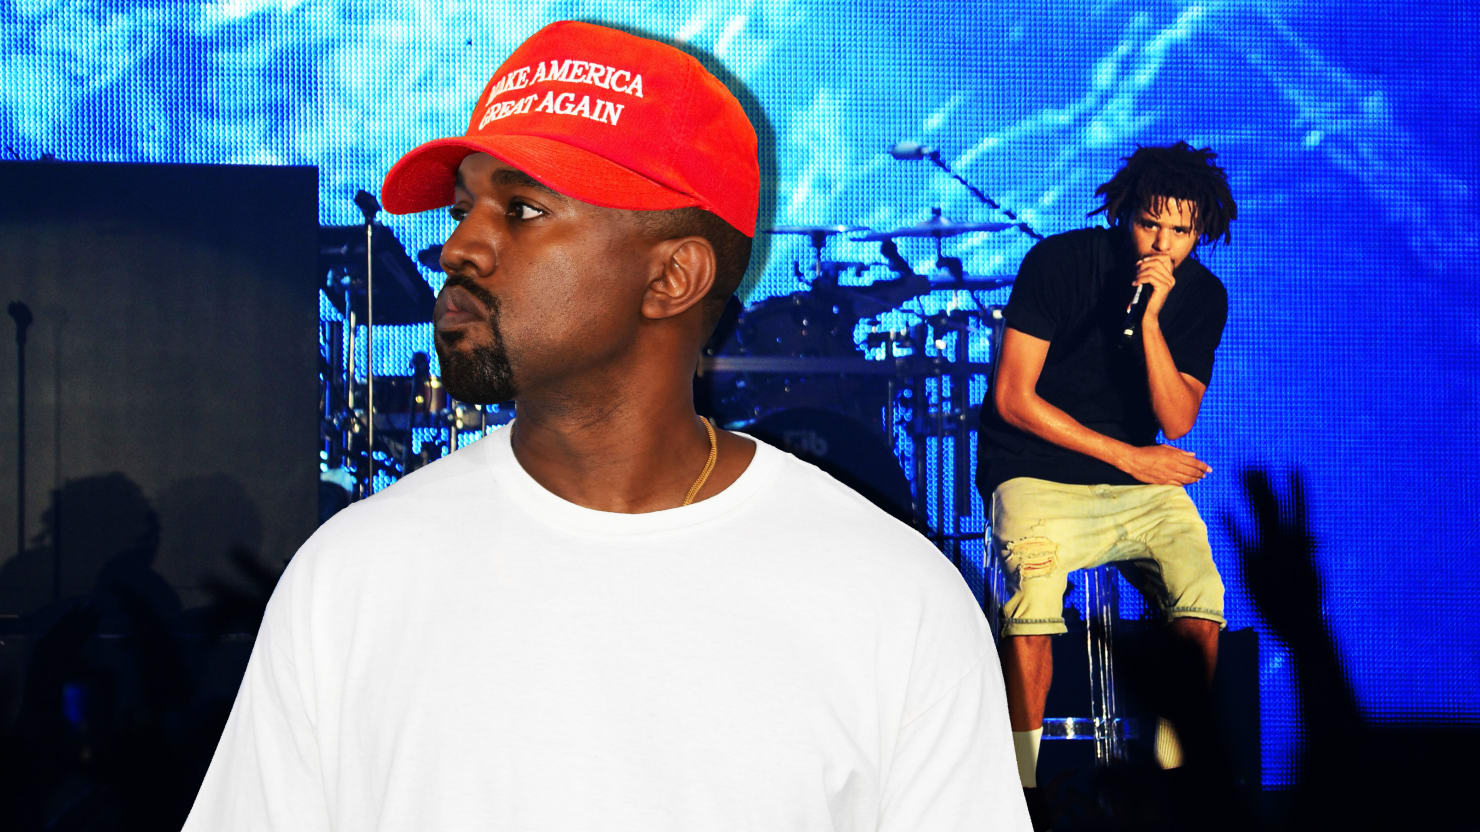 J. Cole Comes for Kanye West: Is the Hip-Hop World Turning on Pro-Trump Yeezy?